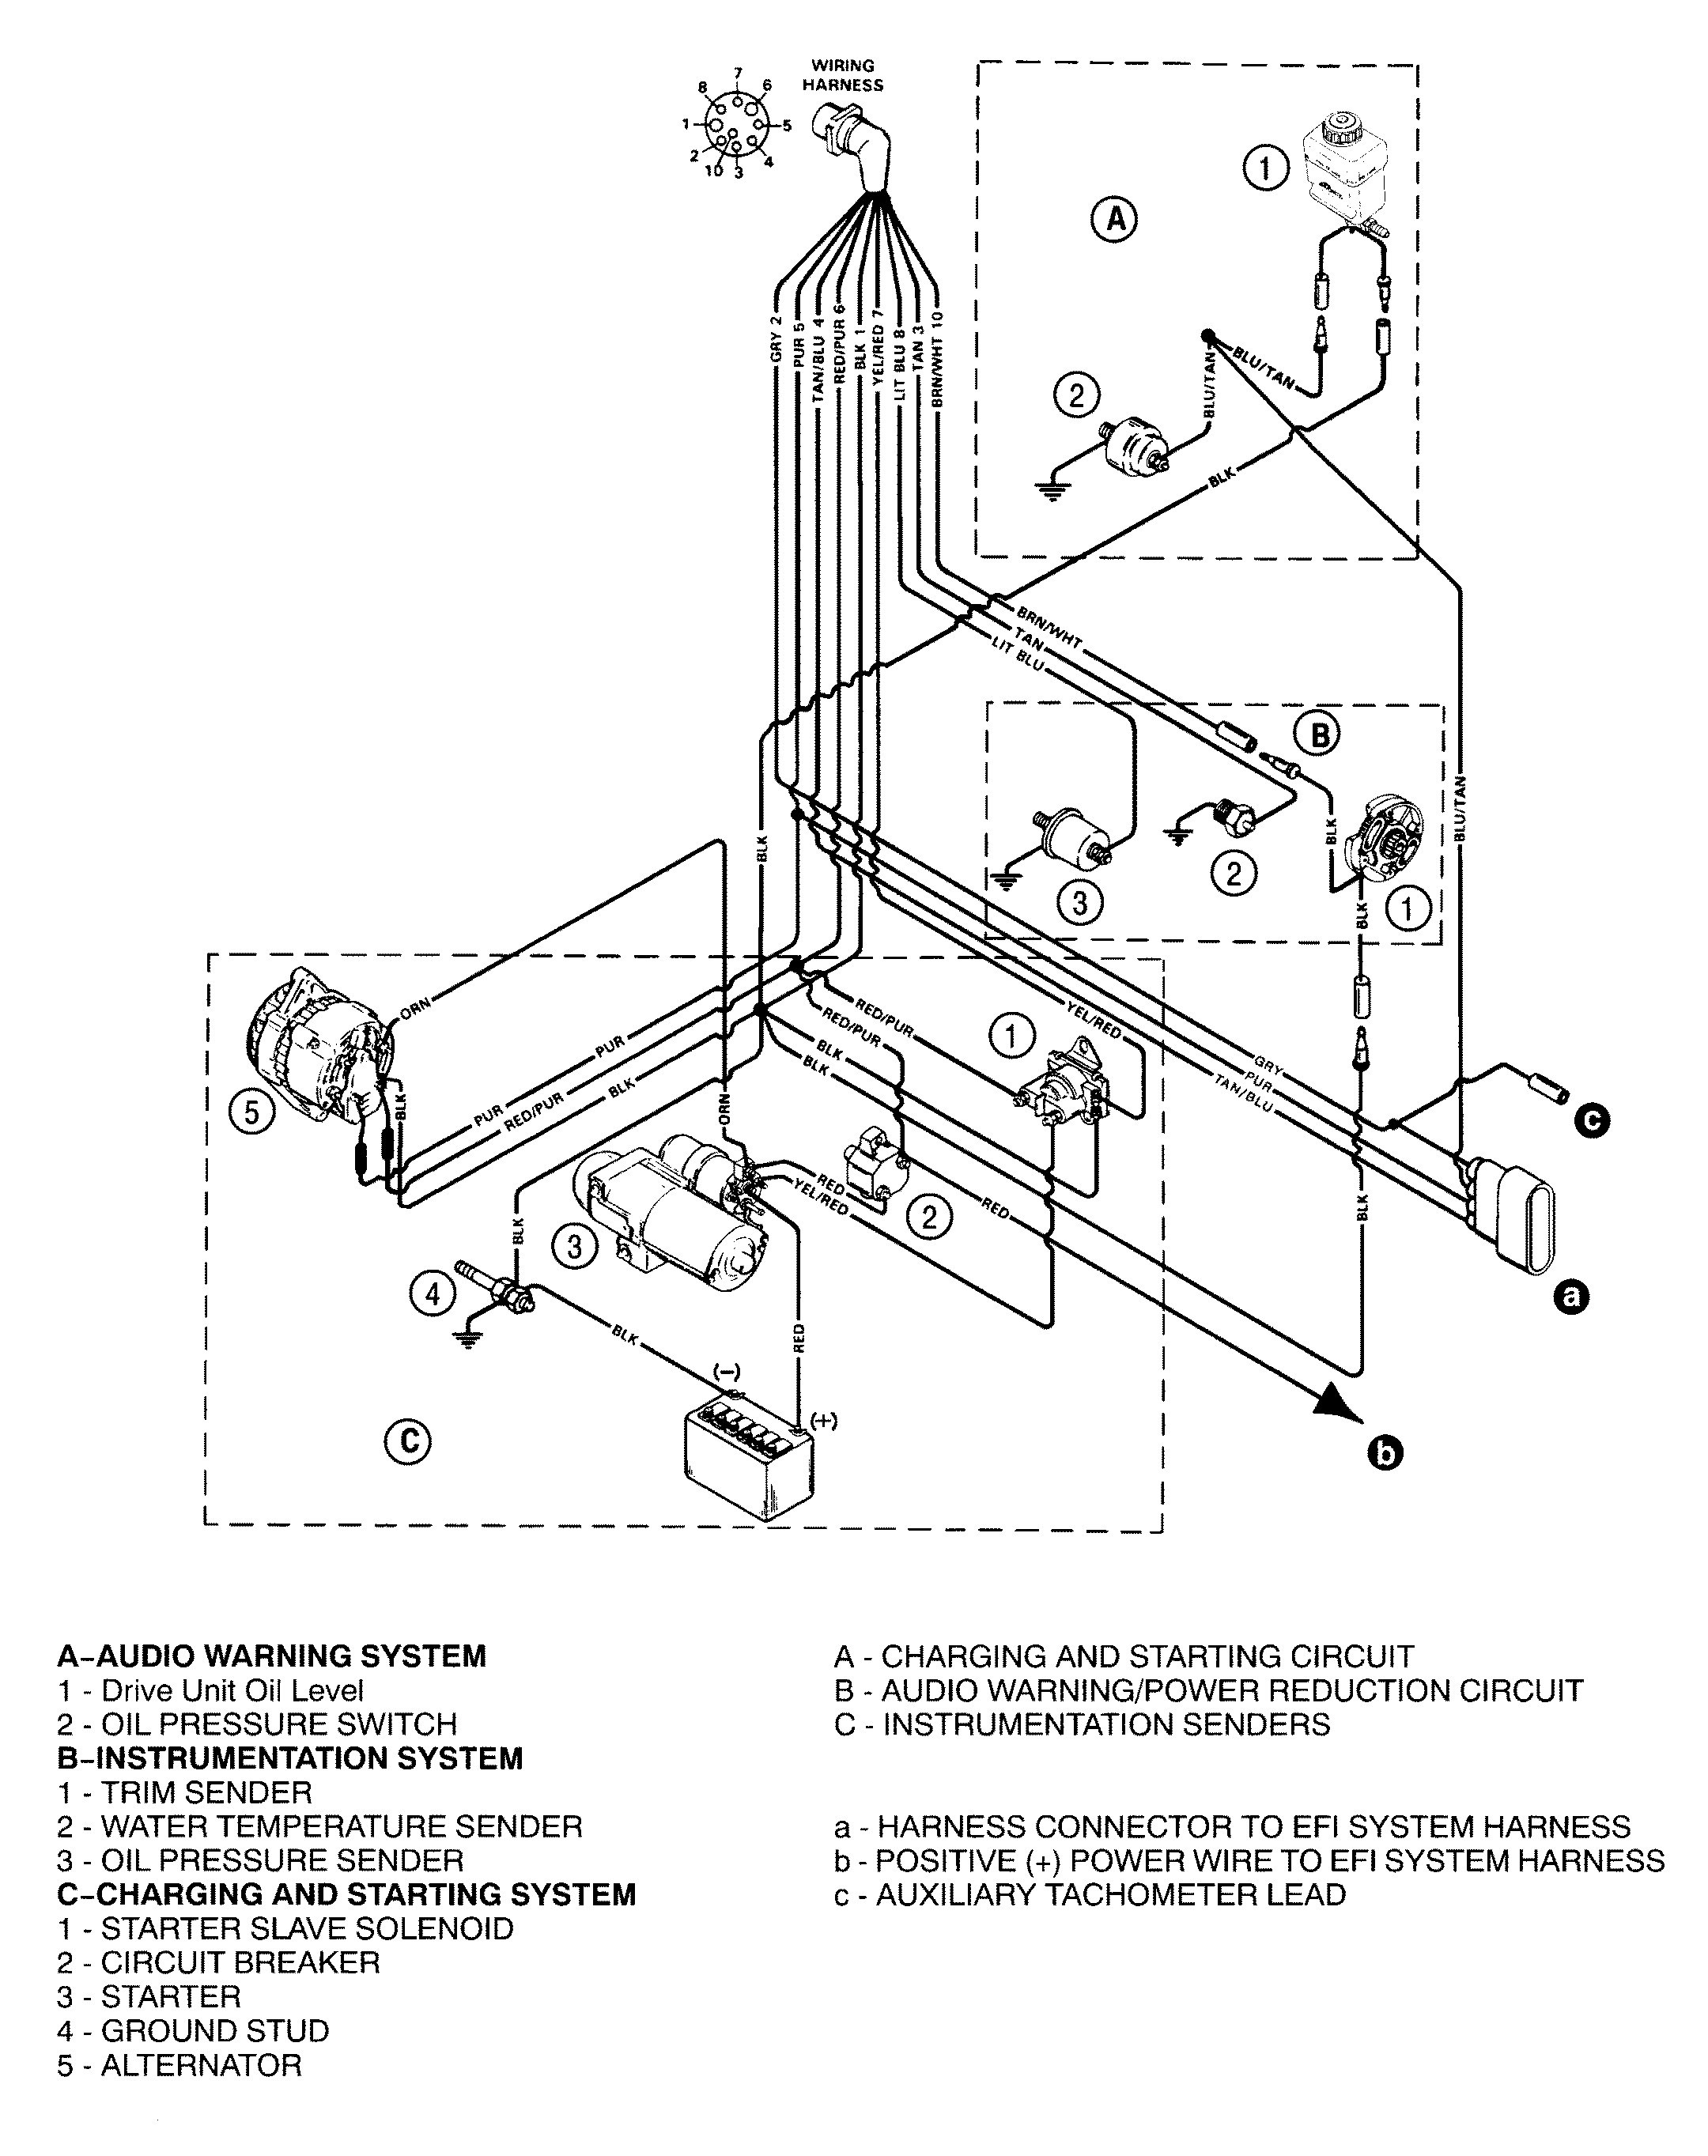 Mercruiser 5 7 Wiring Diagram - Wiring Diagrams Thumbs - Mercruiser 5.7 Wiring Diagram